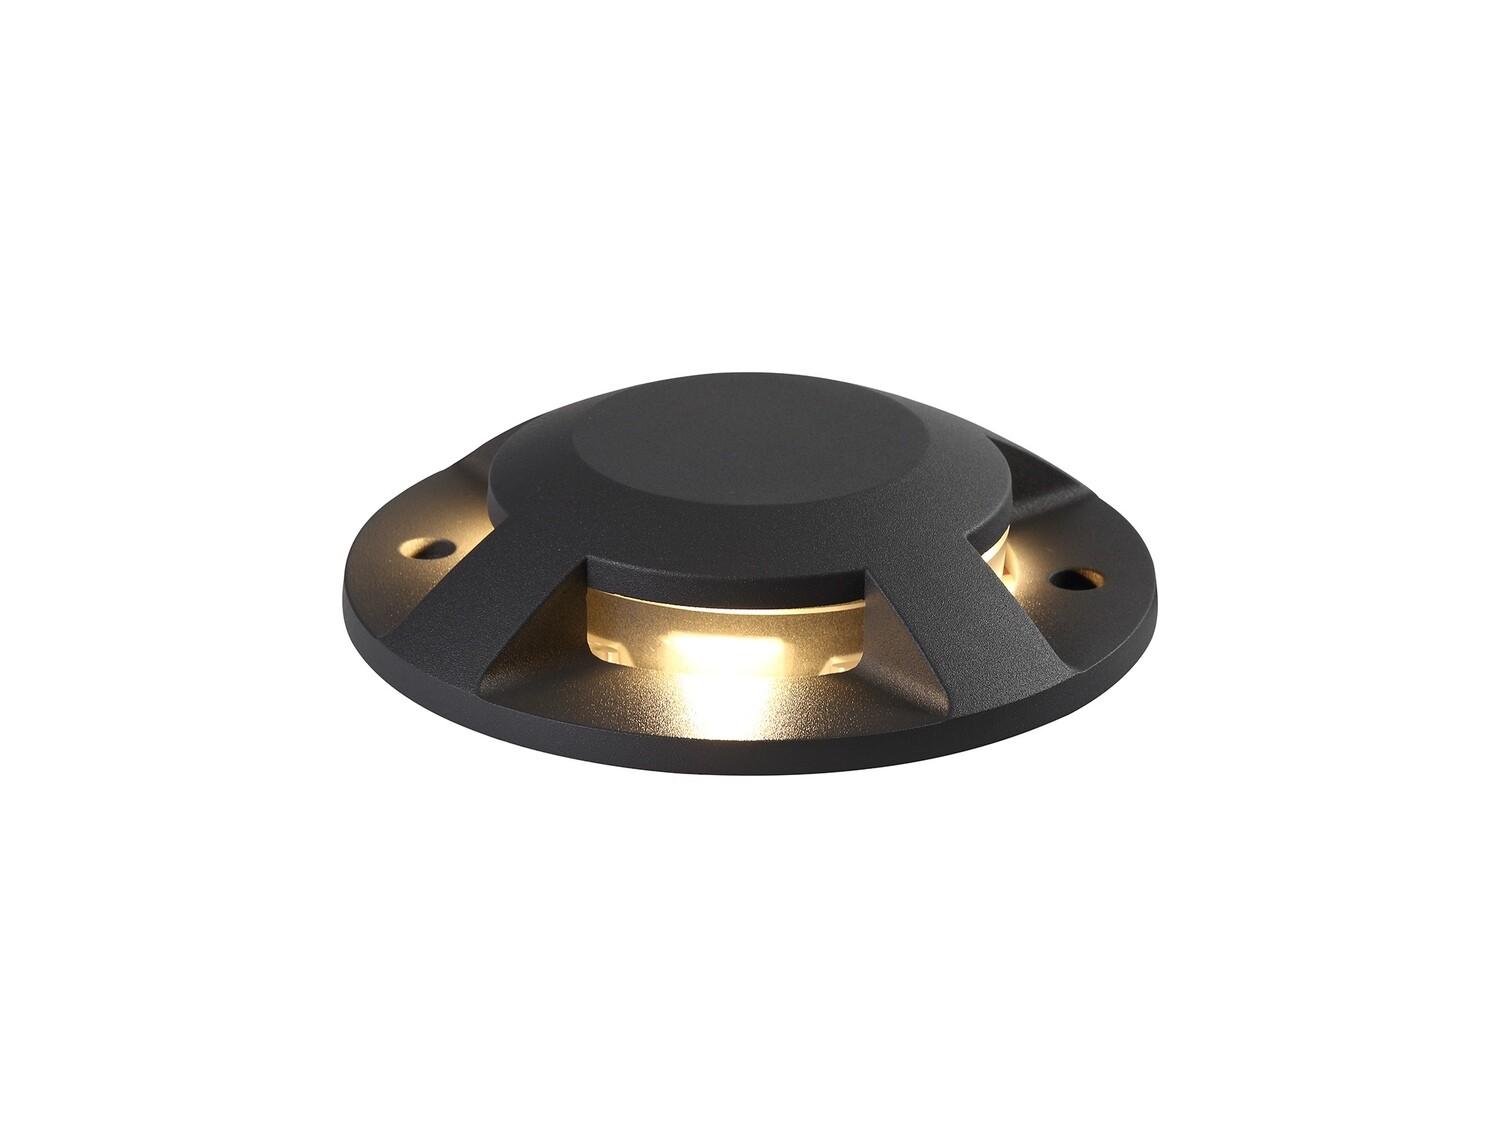 Umbriel above on ground Driveover 4 Light, 4 x 3W LED, 3000K, 256lm, IP67, IK10, Anthracite